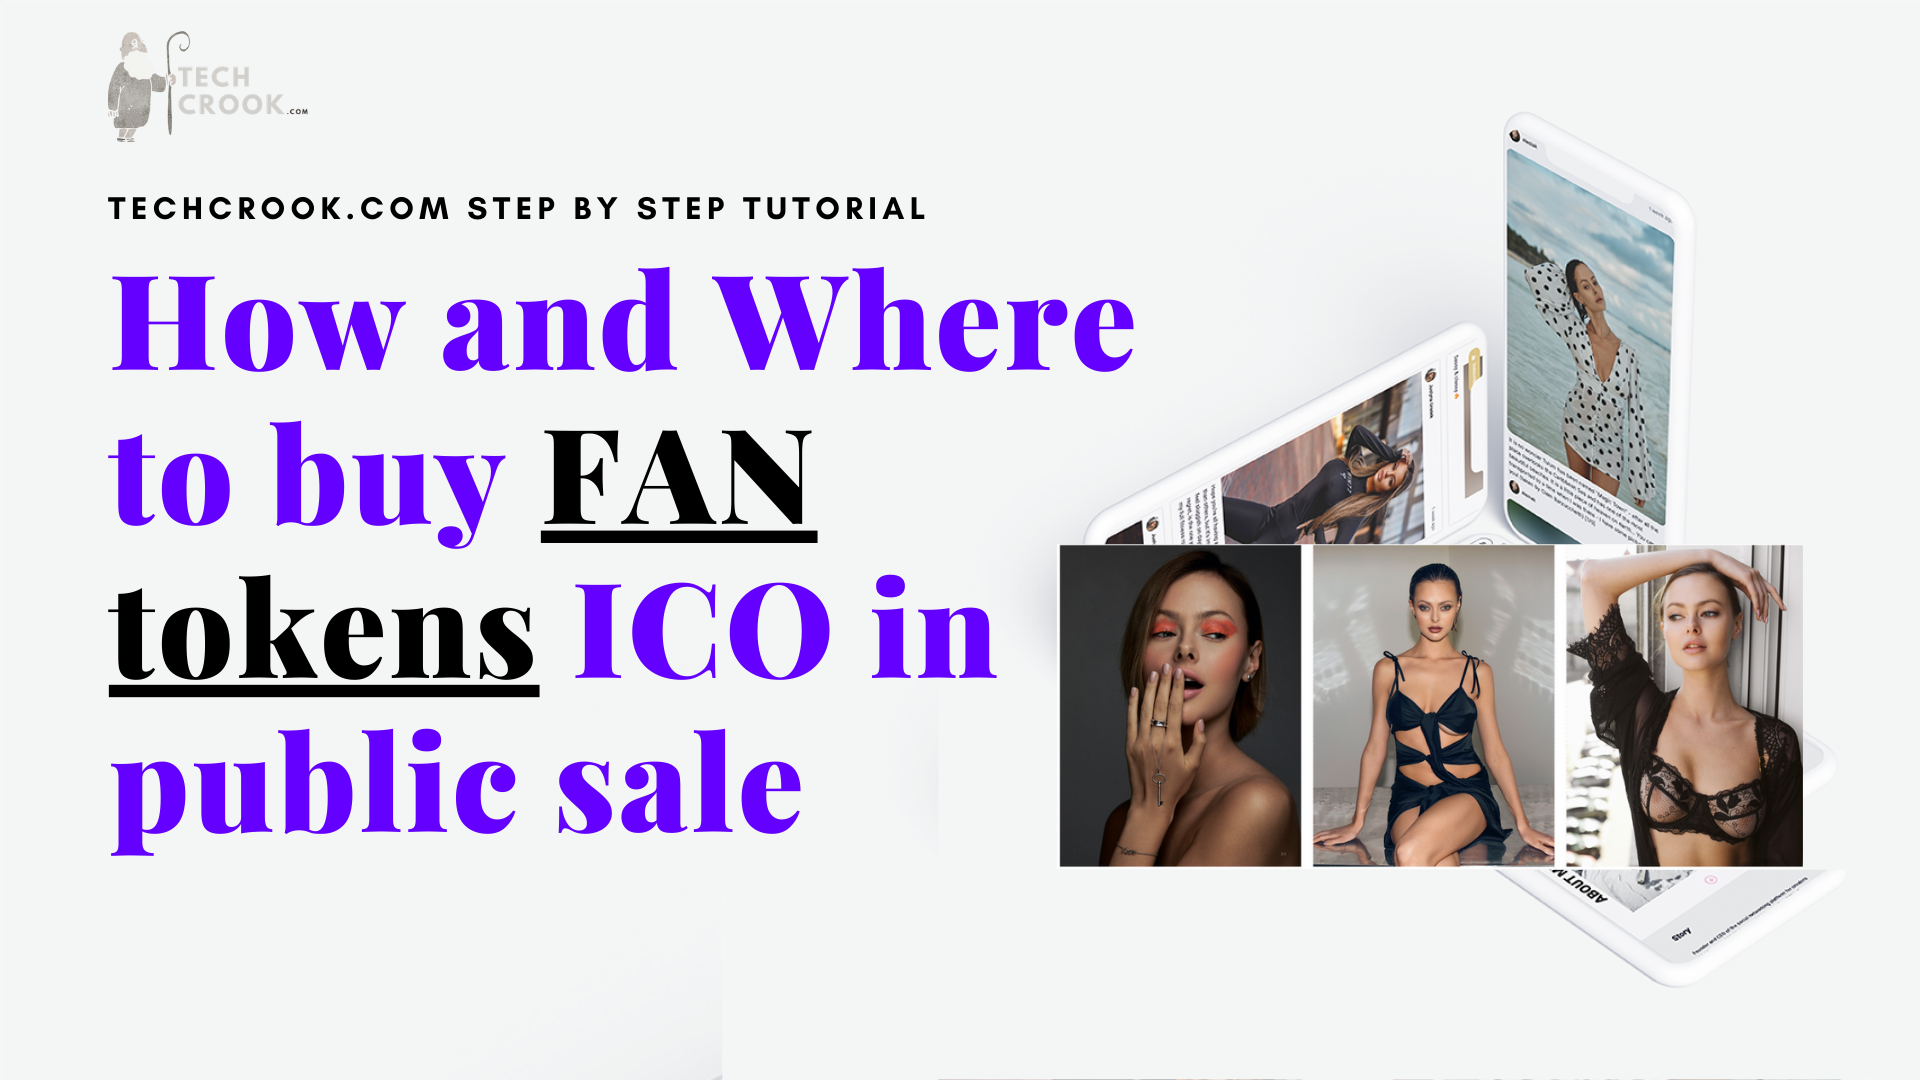 How and Where to buy Fanadise token ICO in public sale